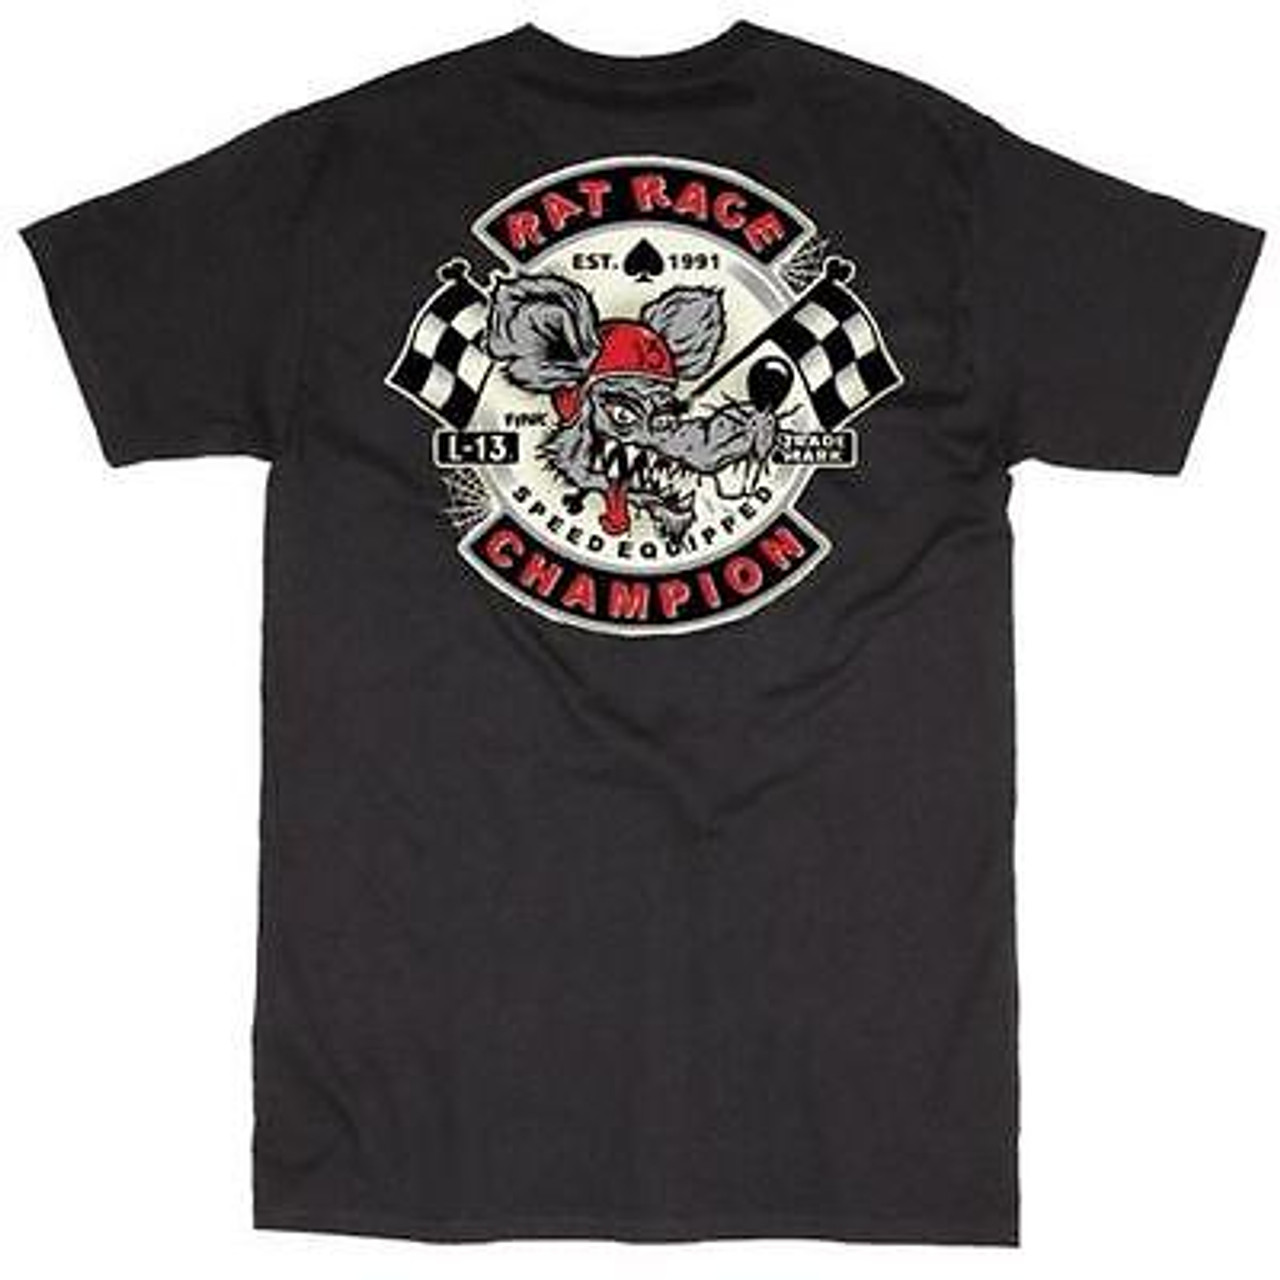 Lucky 13 Rat Race Motorcycle Club Grease Gas Biker Gang Emo Punk Rock T Shirt Fearless Apparel